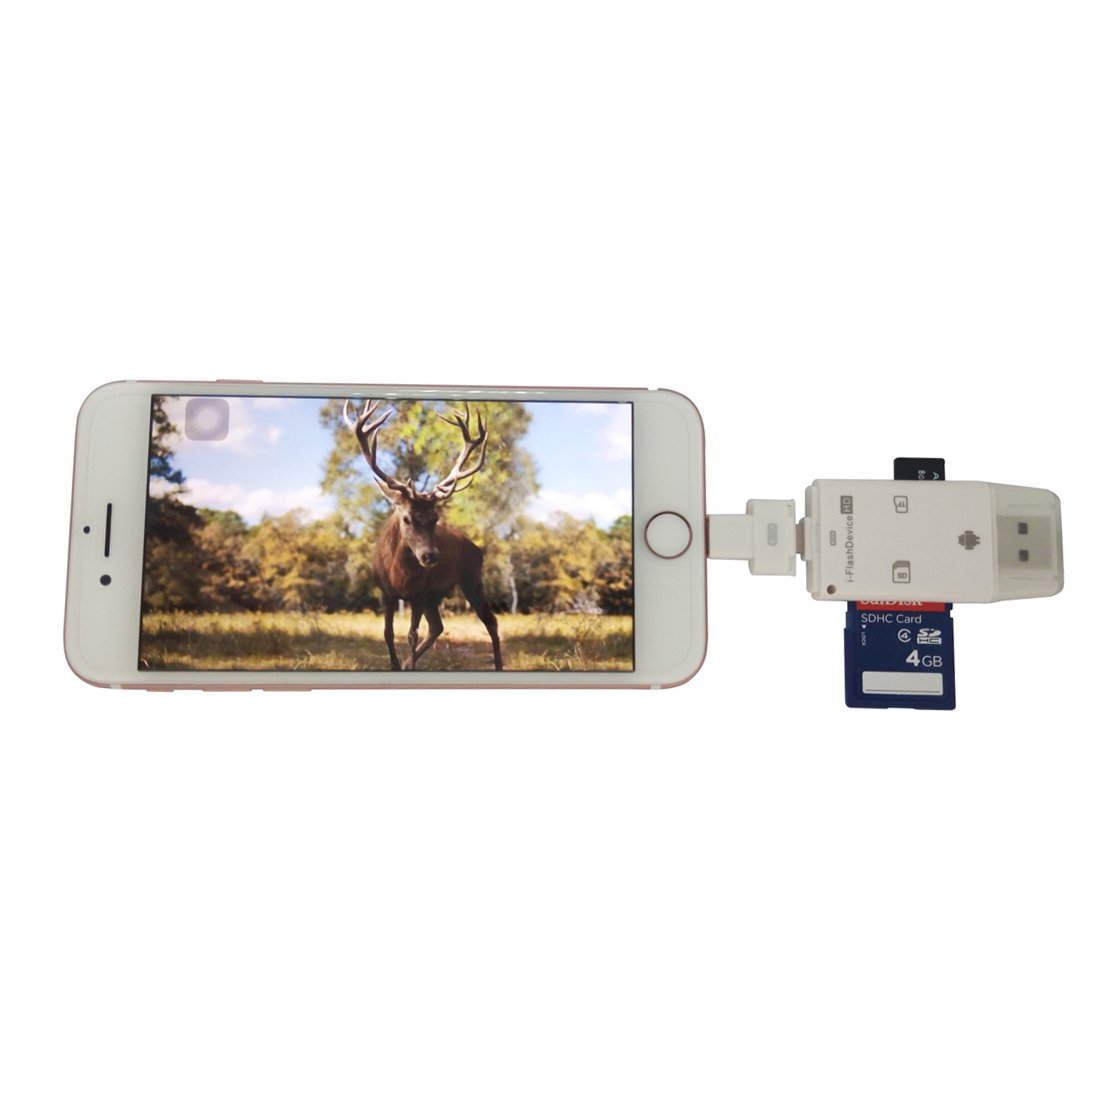 TSEAH Phone Trail Camera Viewer/Trail Camera Pictures Reader Lighting Card Adapter for Hunting Camera Memory Cards iPhone andriod Smartphone and PC (White) by TSEAH (Image #1)